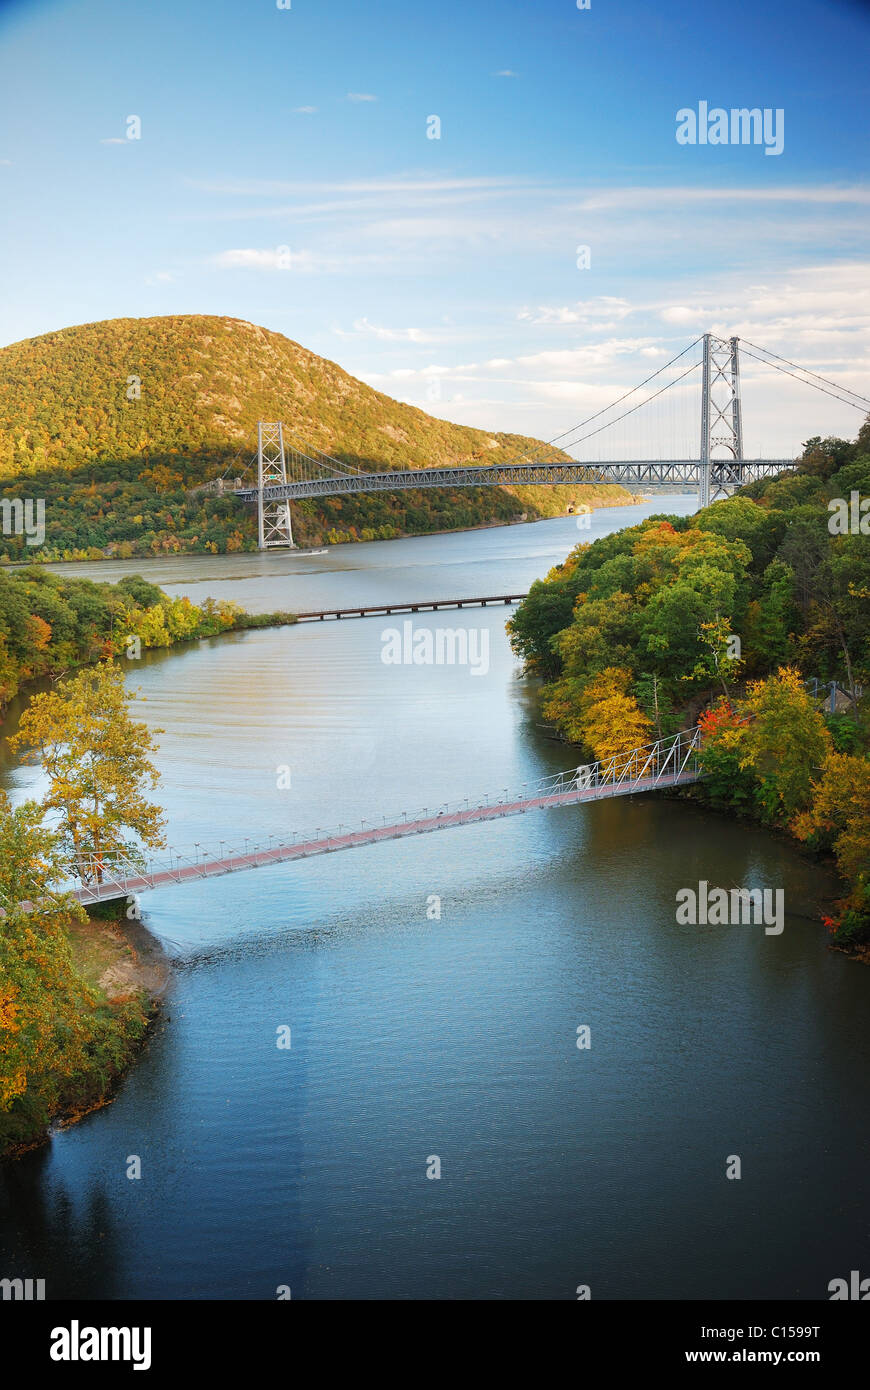 Hudson River valley in Autumn with colorful mountain and Bridge over Hudson River. - Stock Image